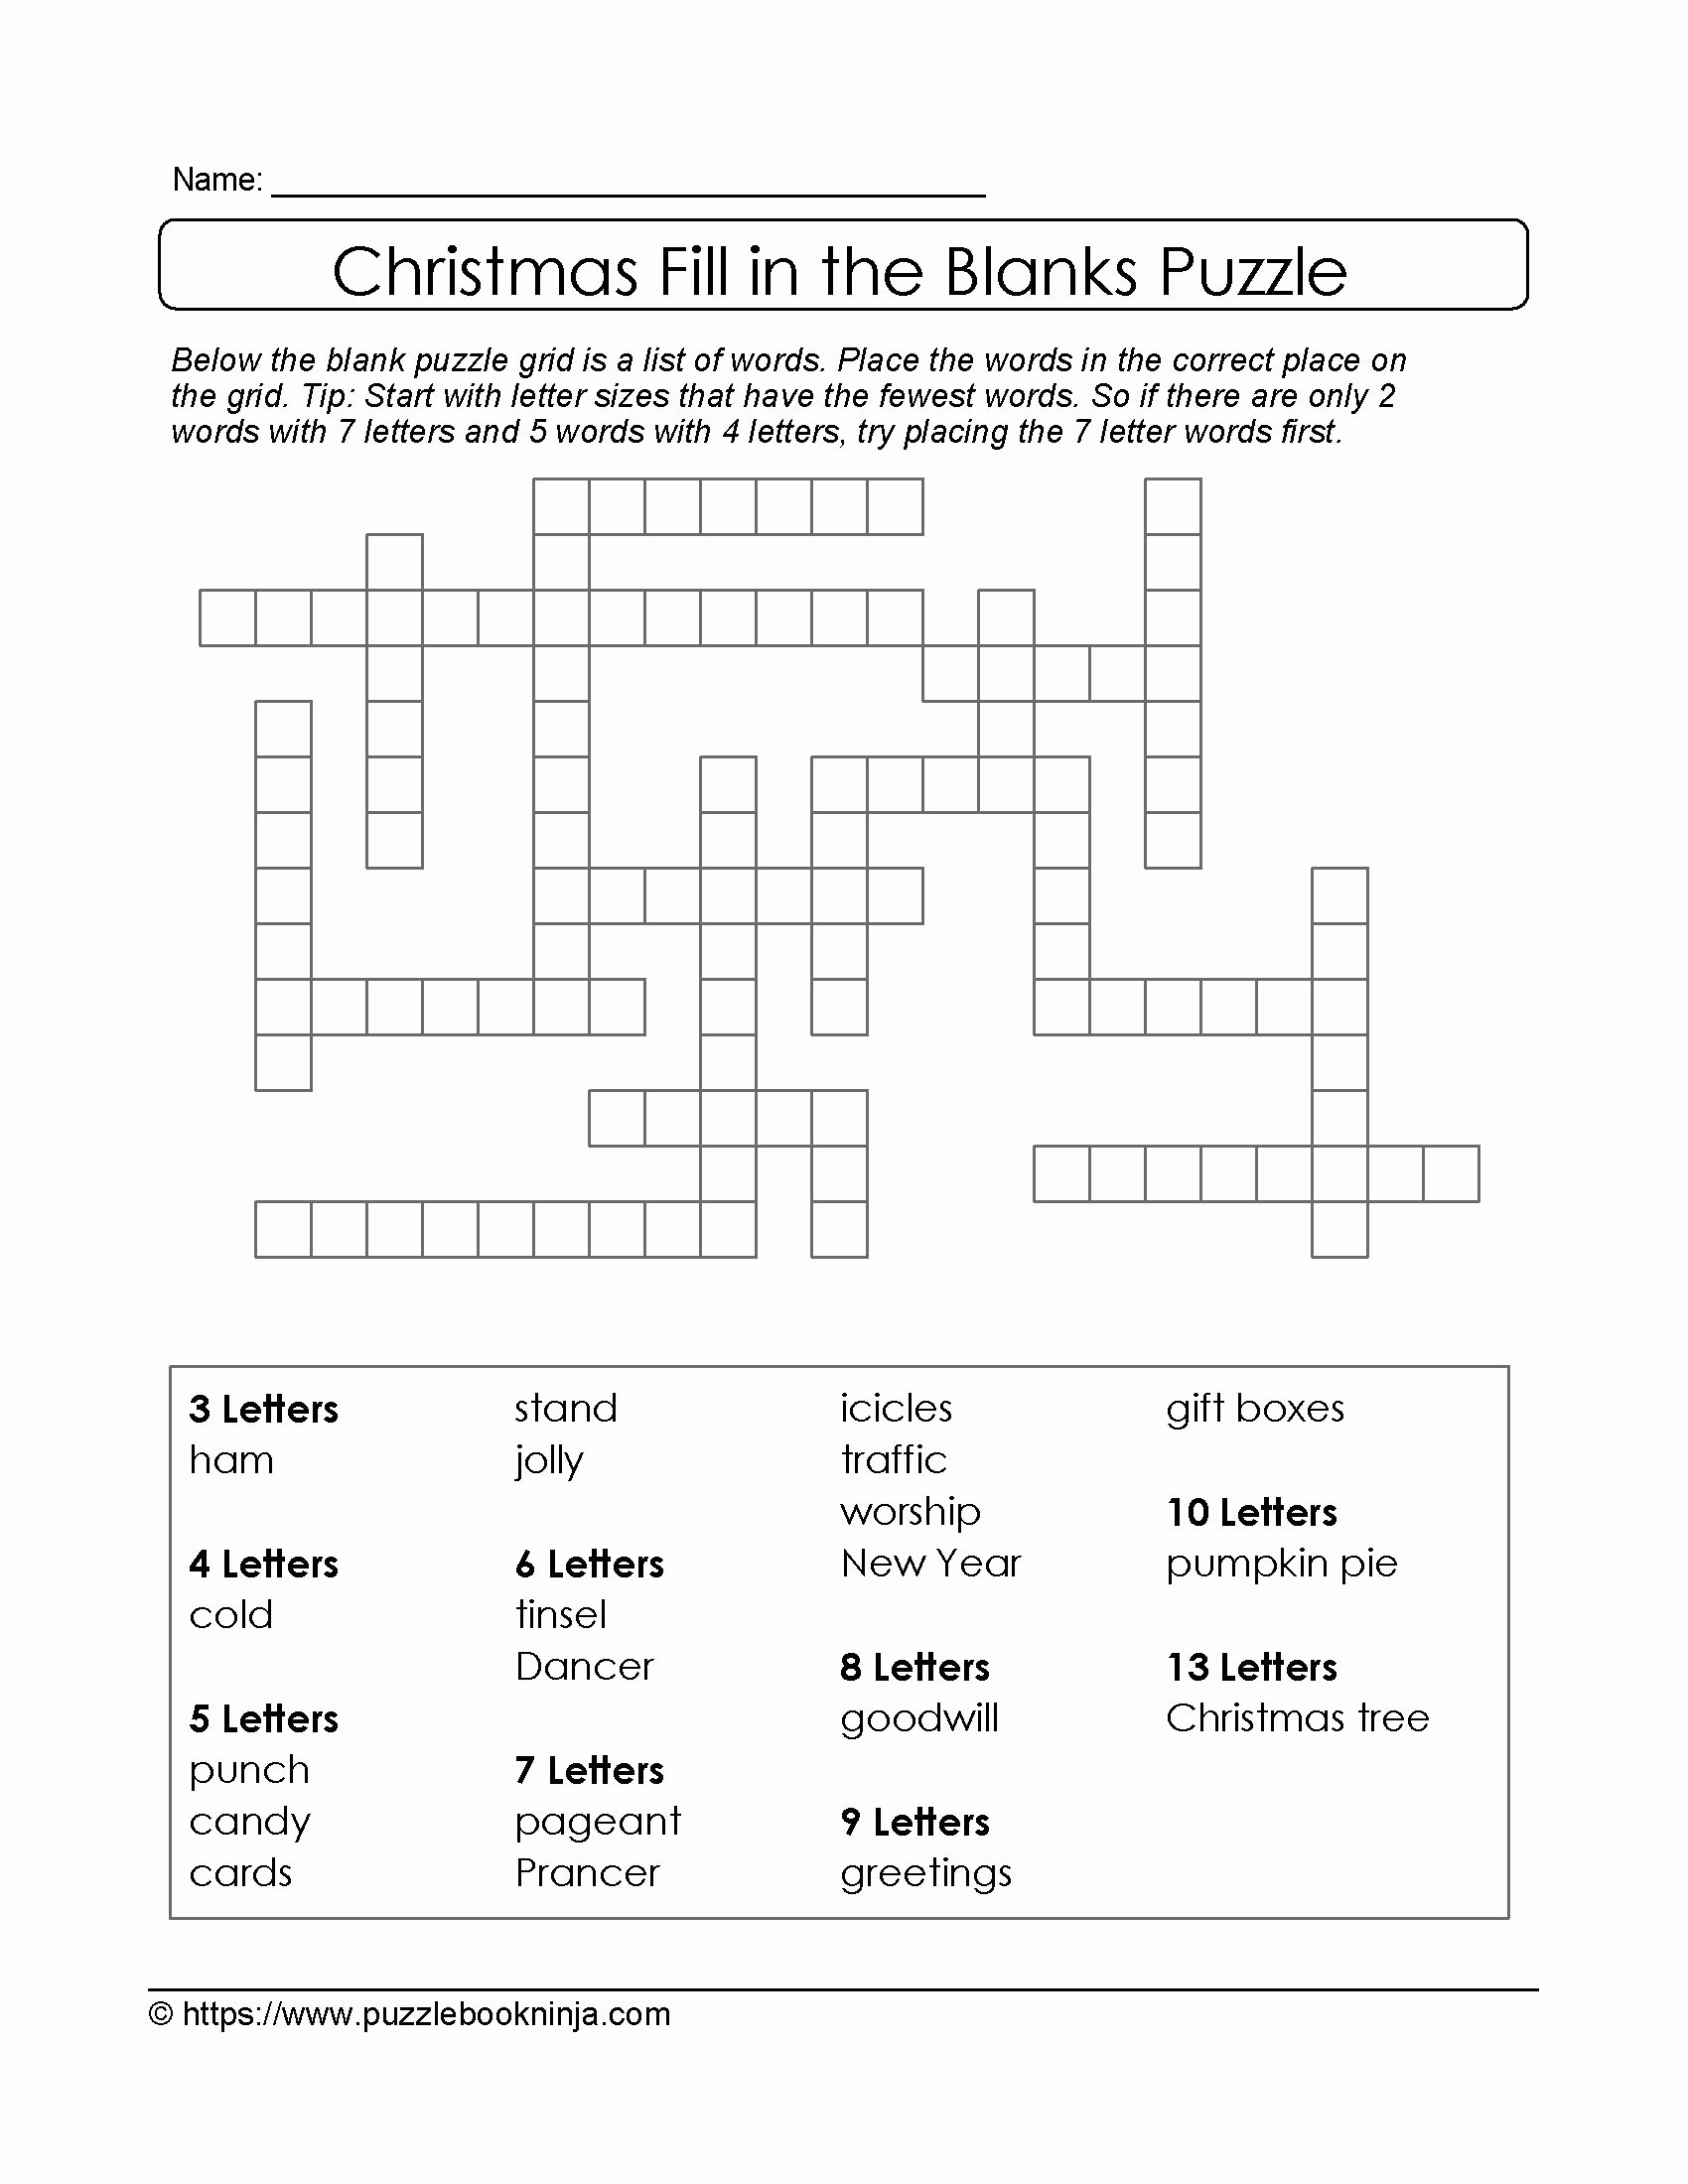 Word Fill In Puzzles Printable Luxury Freebie Xmas Puzzle to Print Fill In the Blanks Crossword